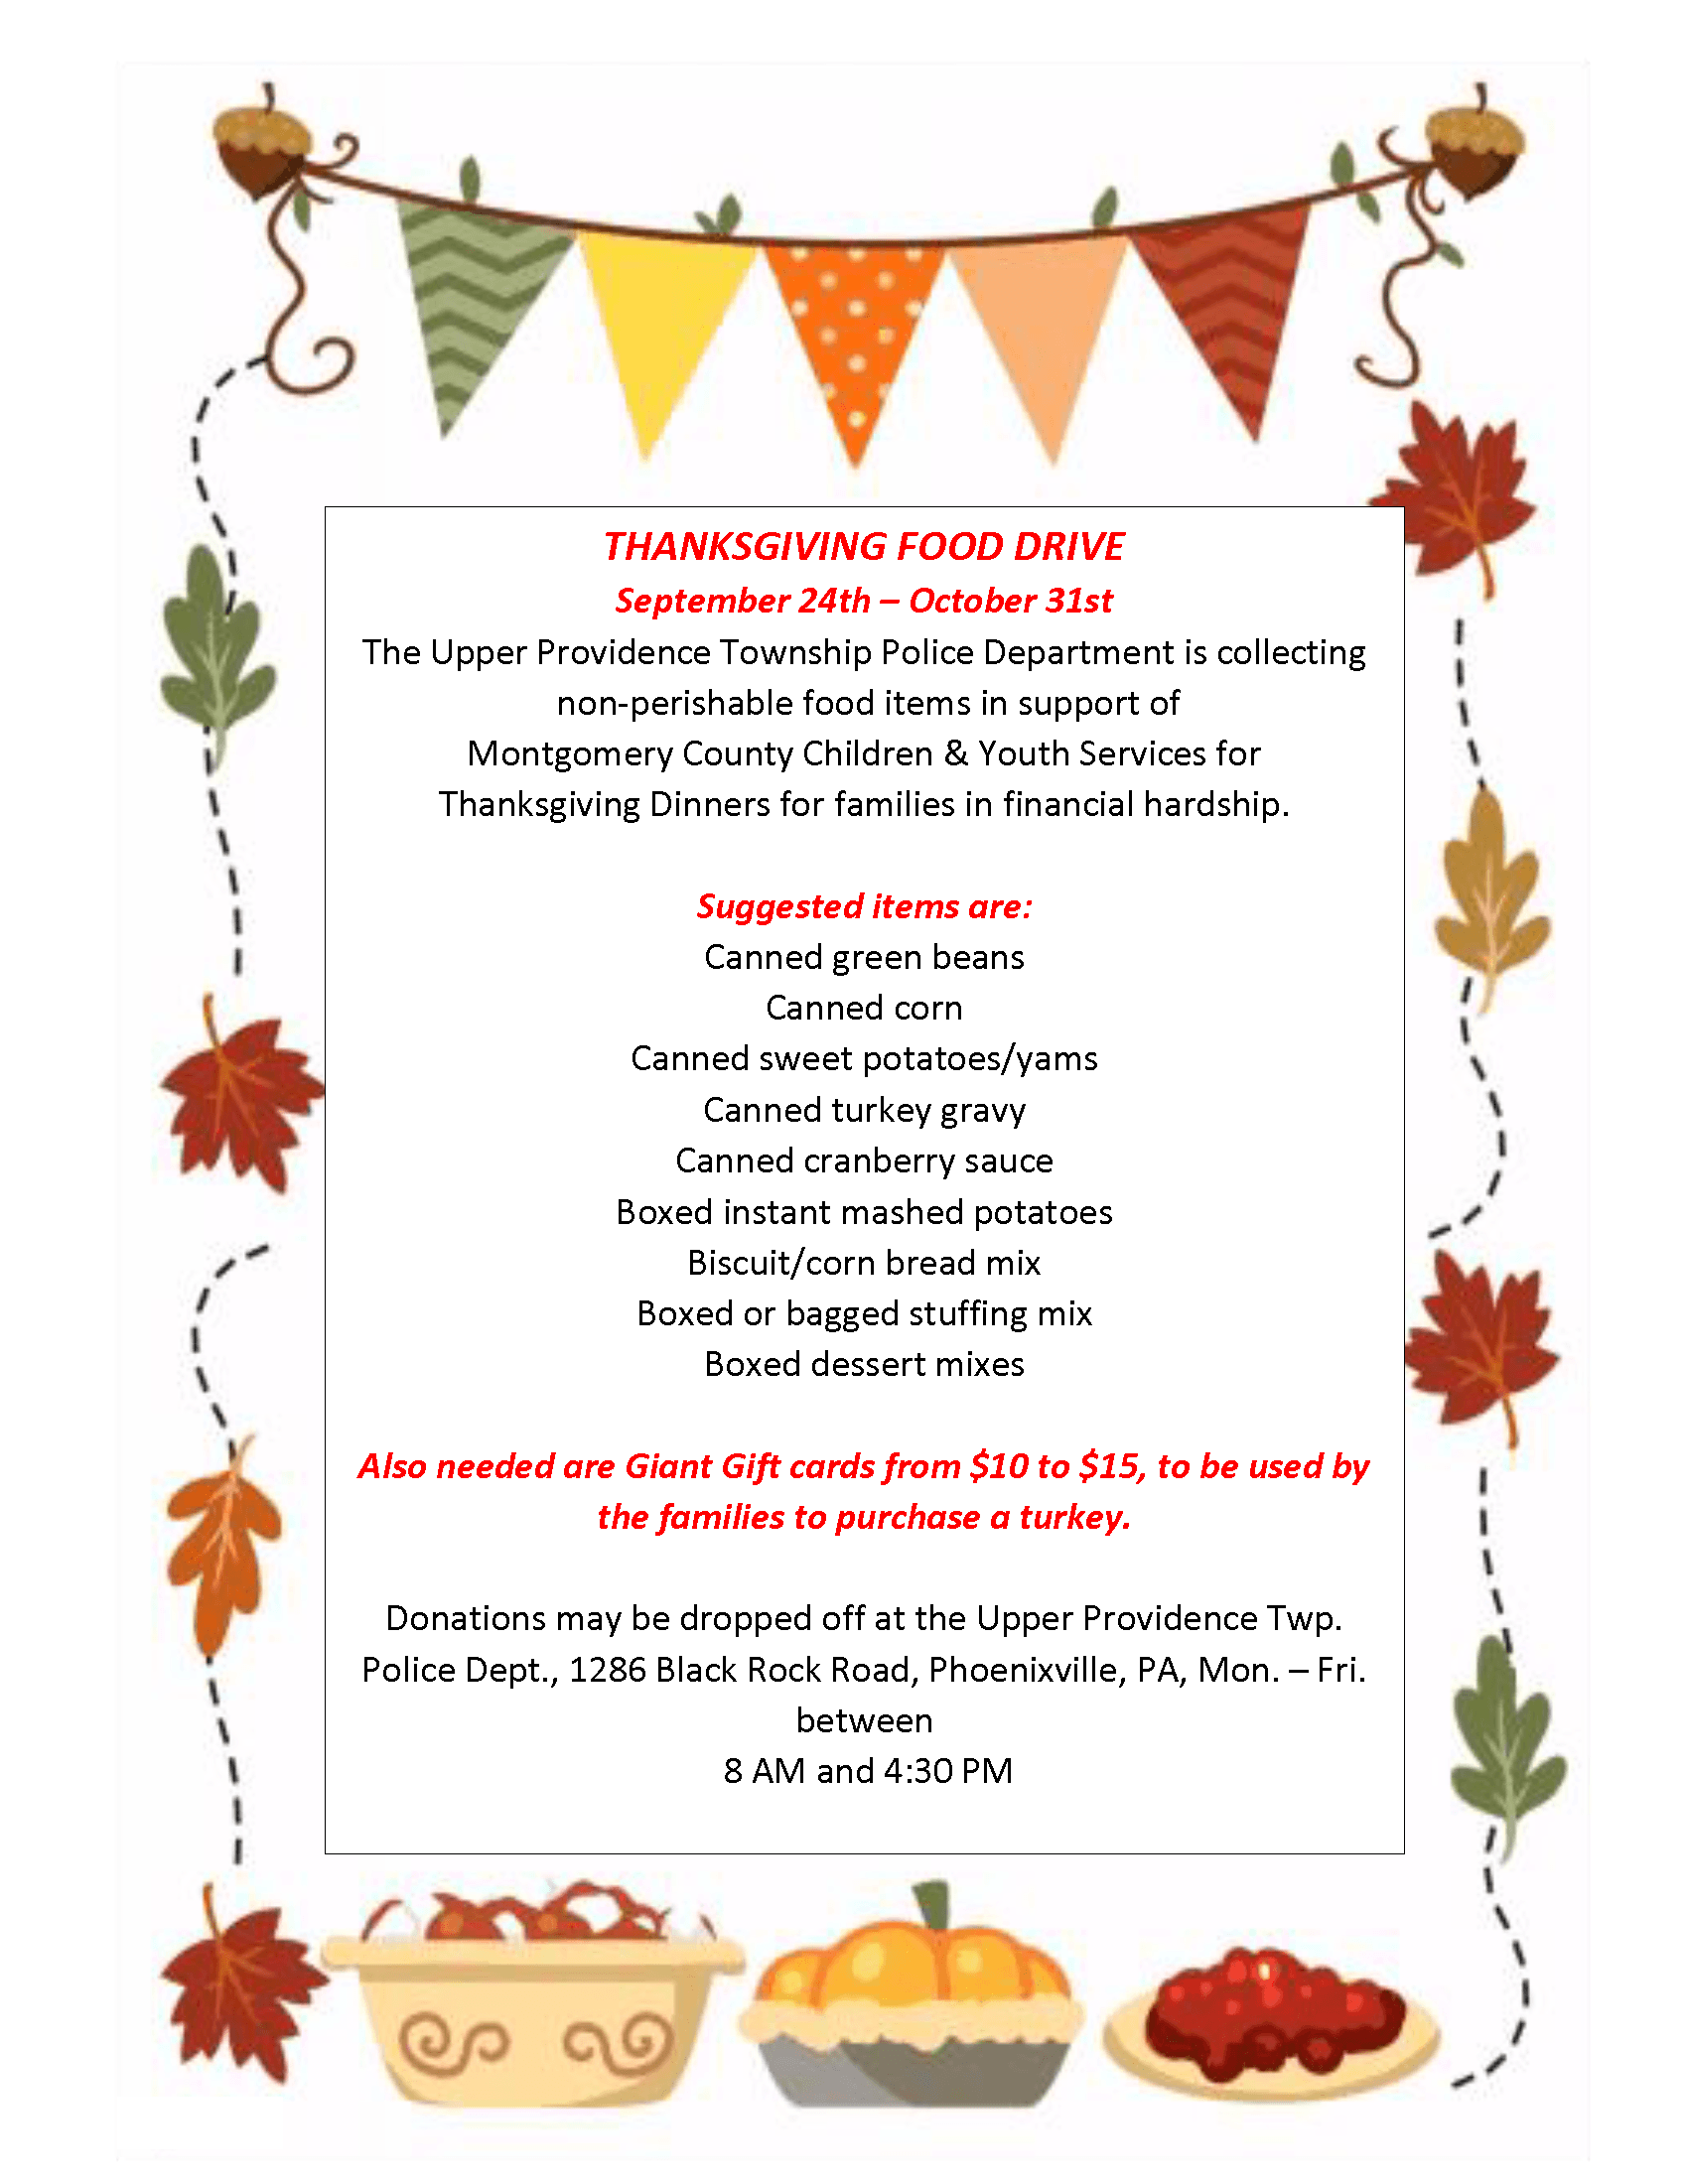 CYS Food Drive for Thanksgiving